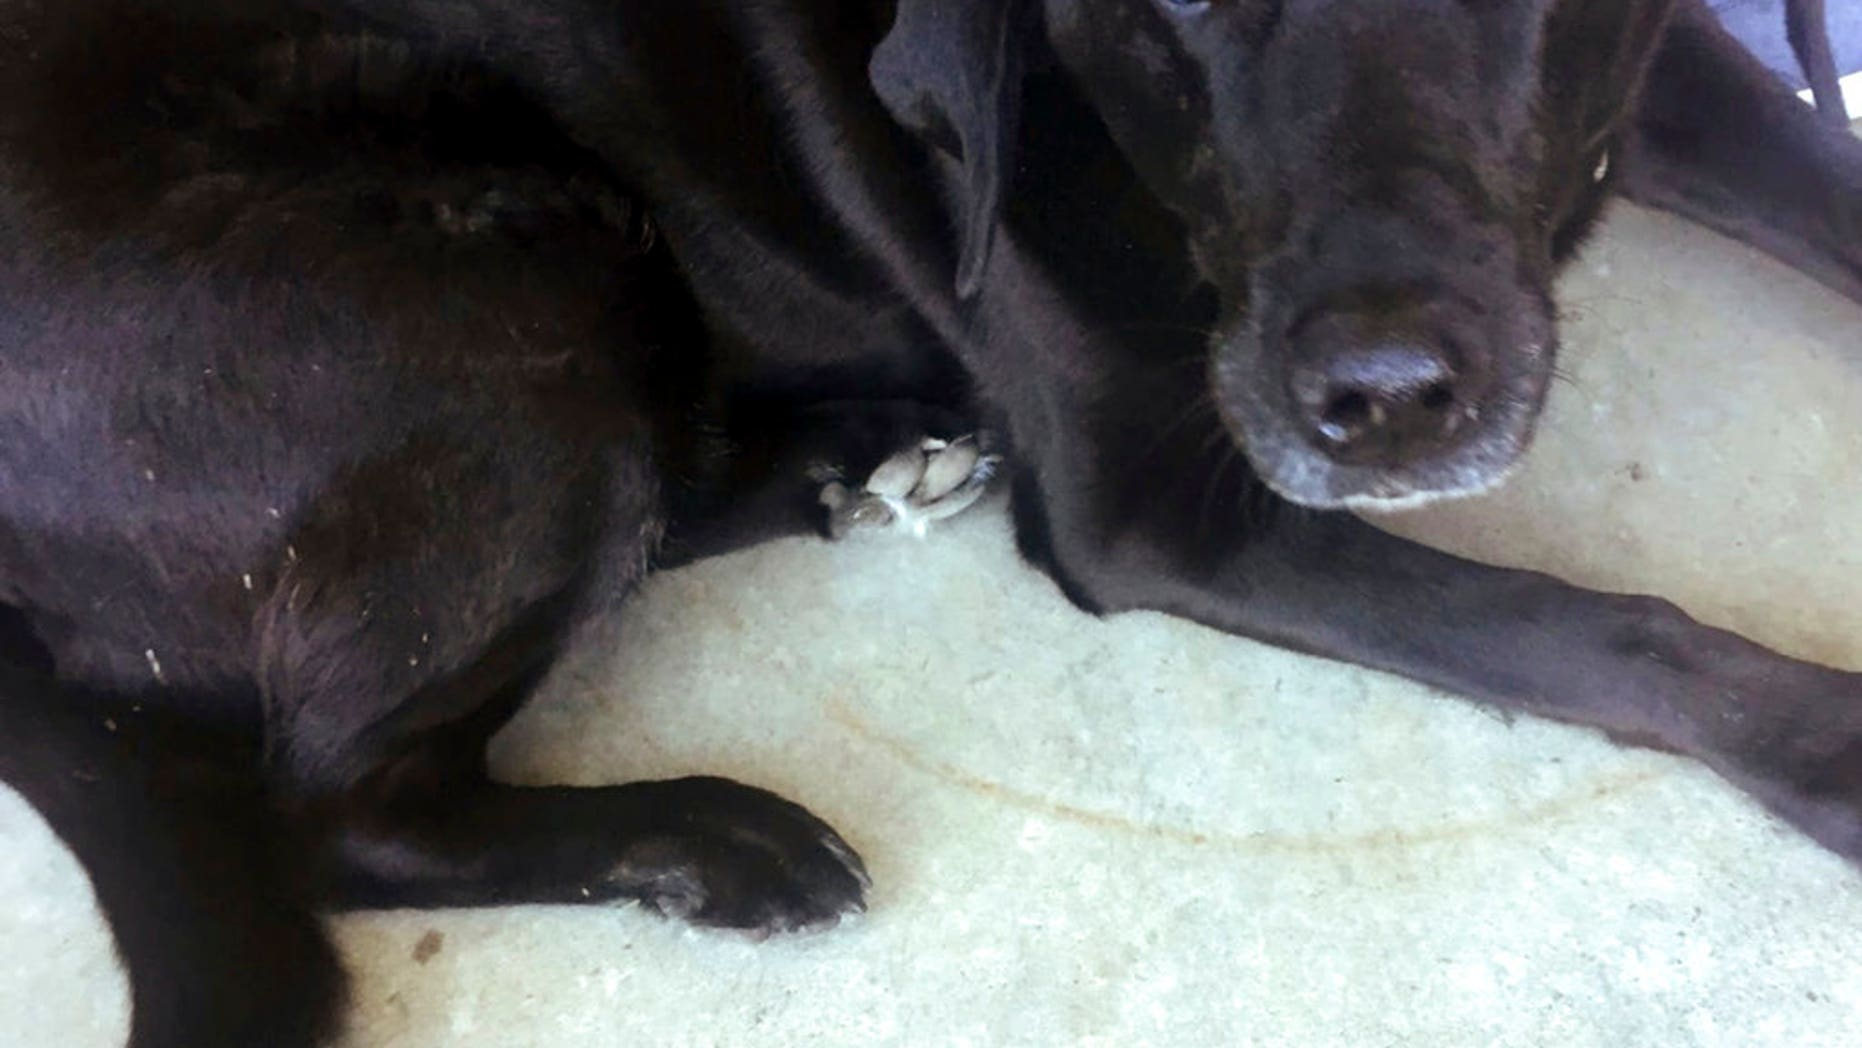 Black Lab named Lucy at McMenamins Gearhart Golf Links in Gearhart, Ore. The discovery of Lucy led to the unraveling of a criminal case